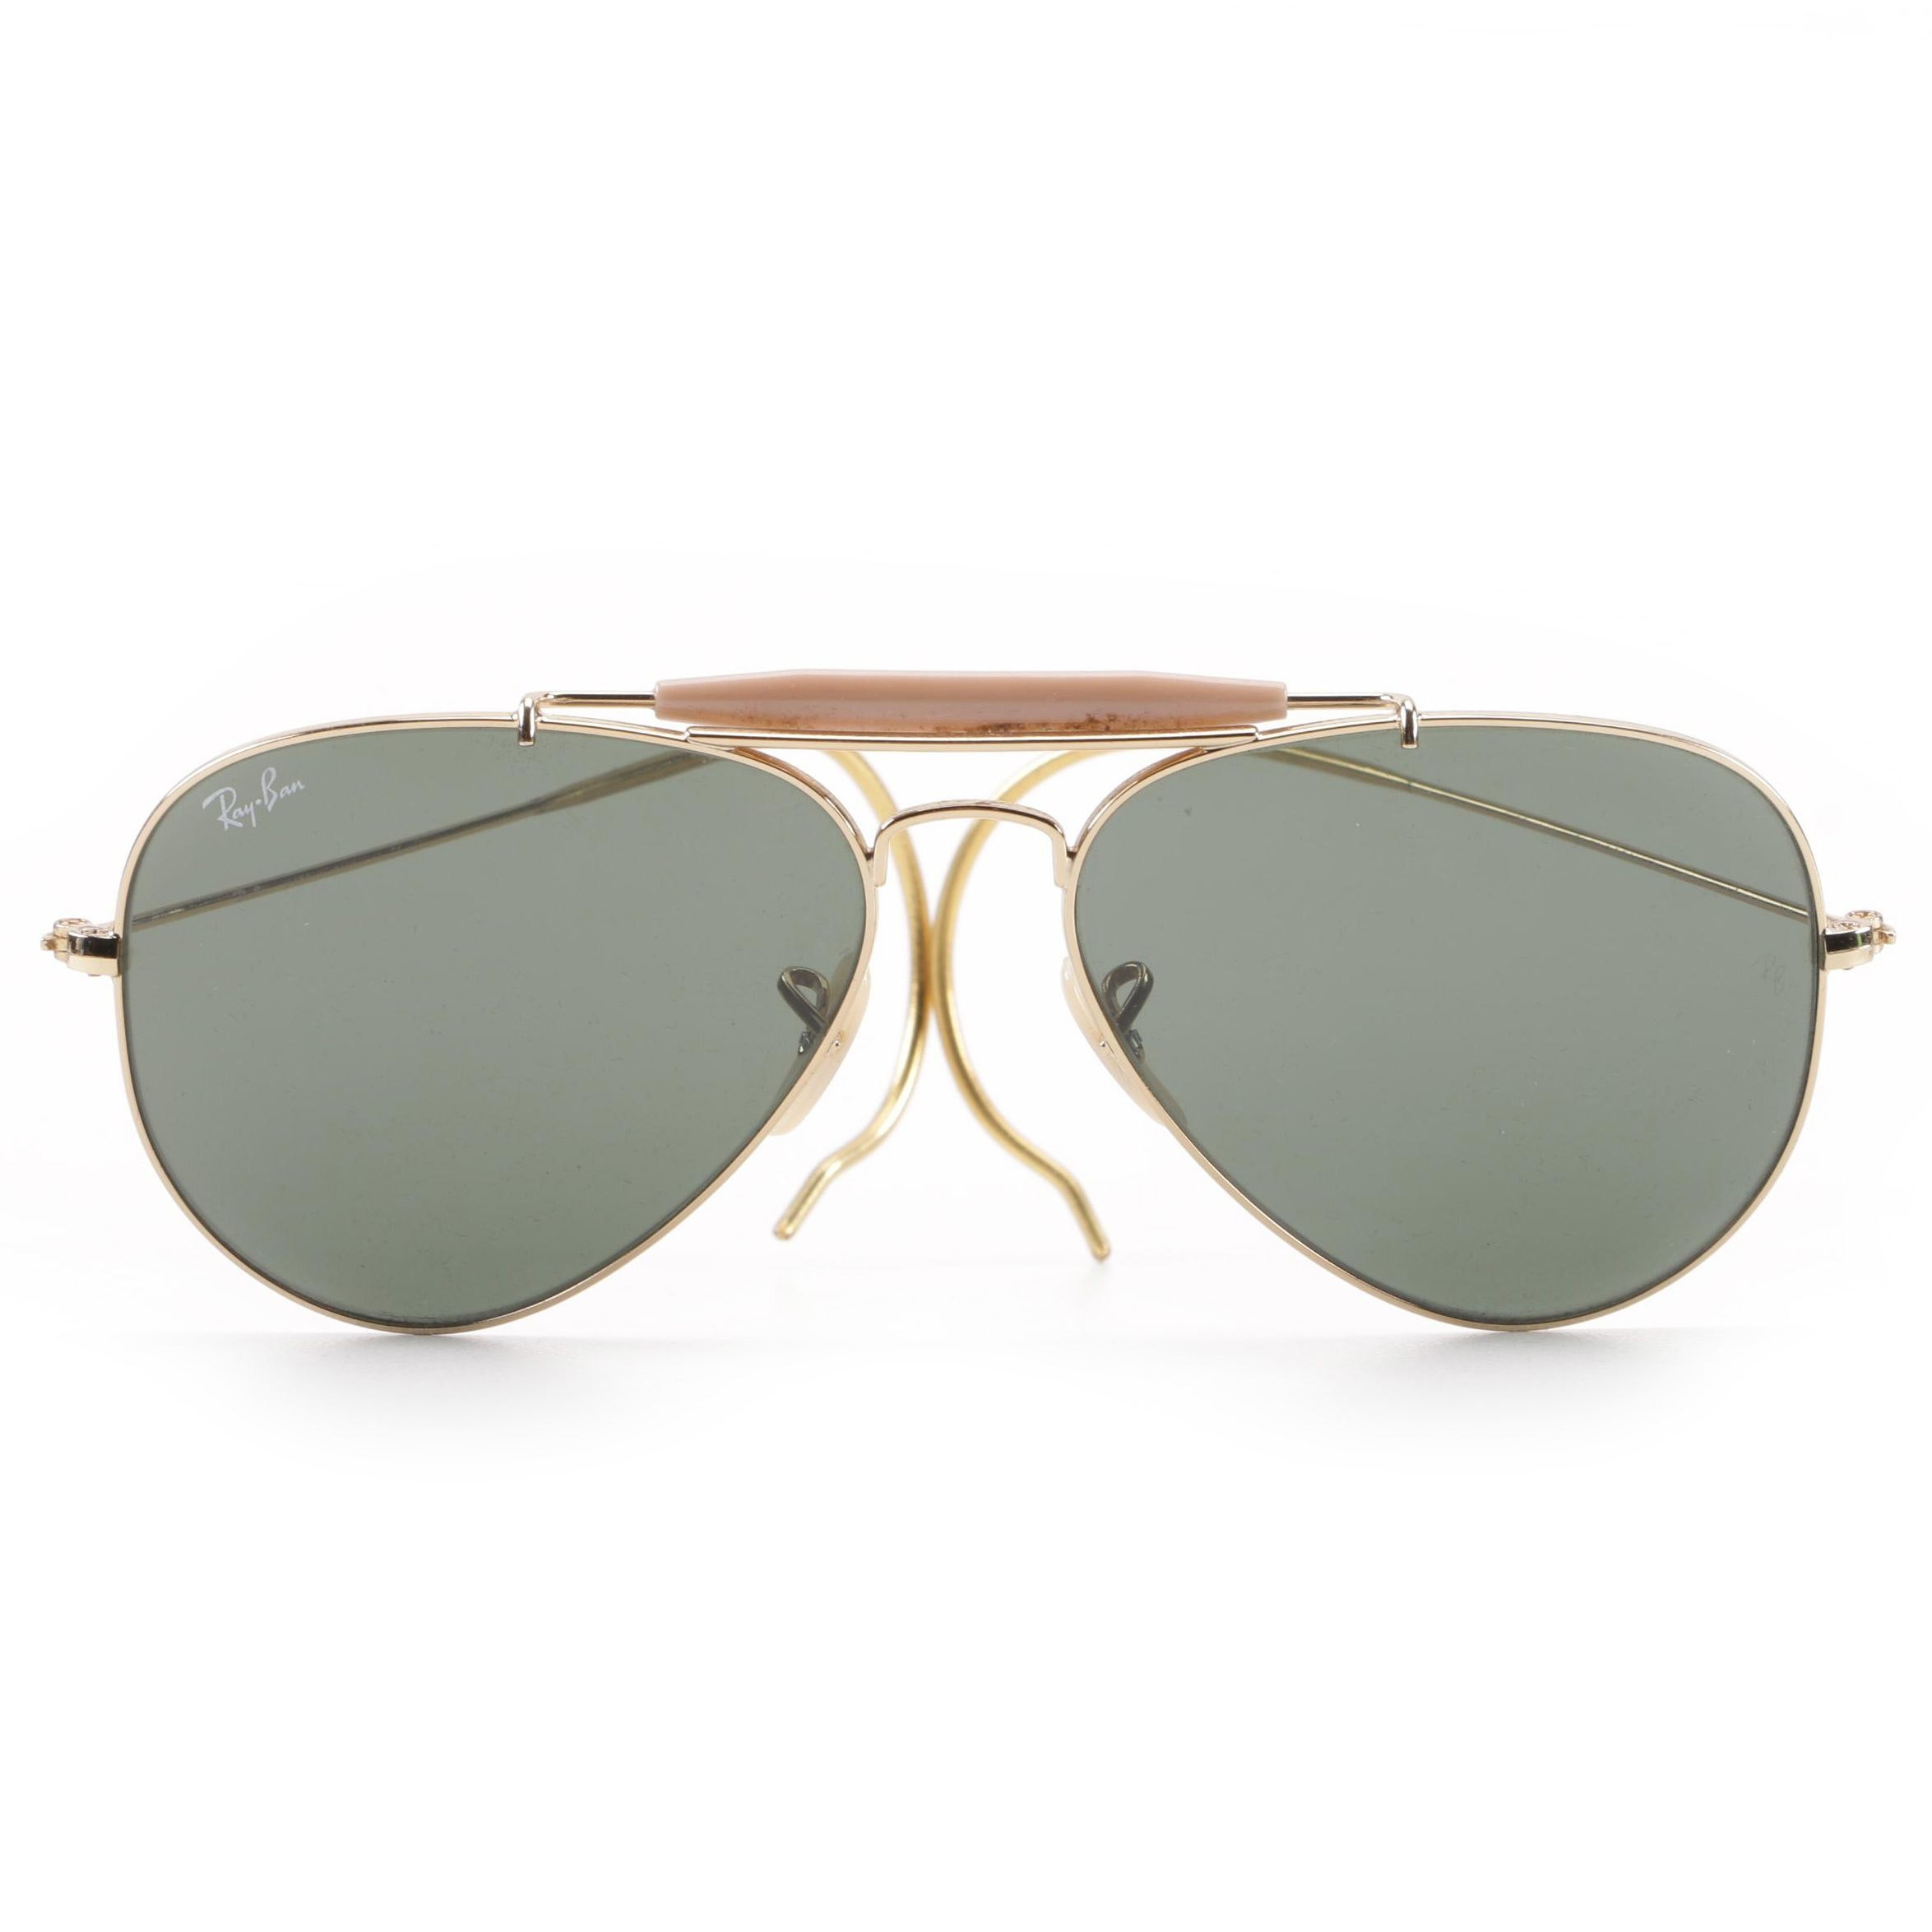 Ray-Ban Outdoorsman Aviator Sunglasses and Brown Case